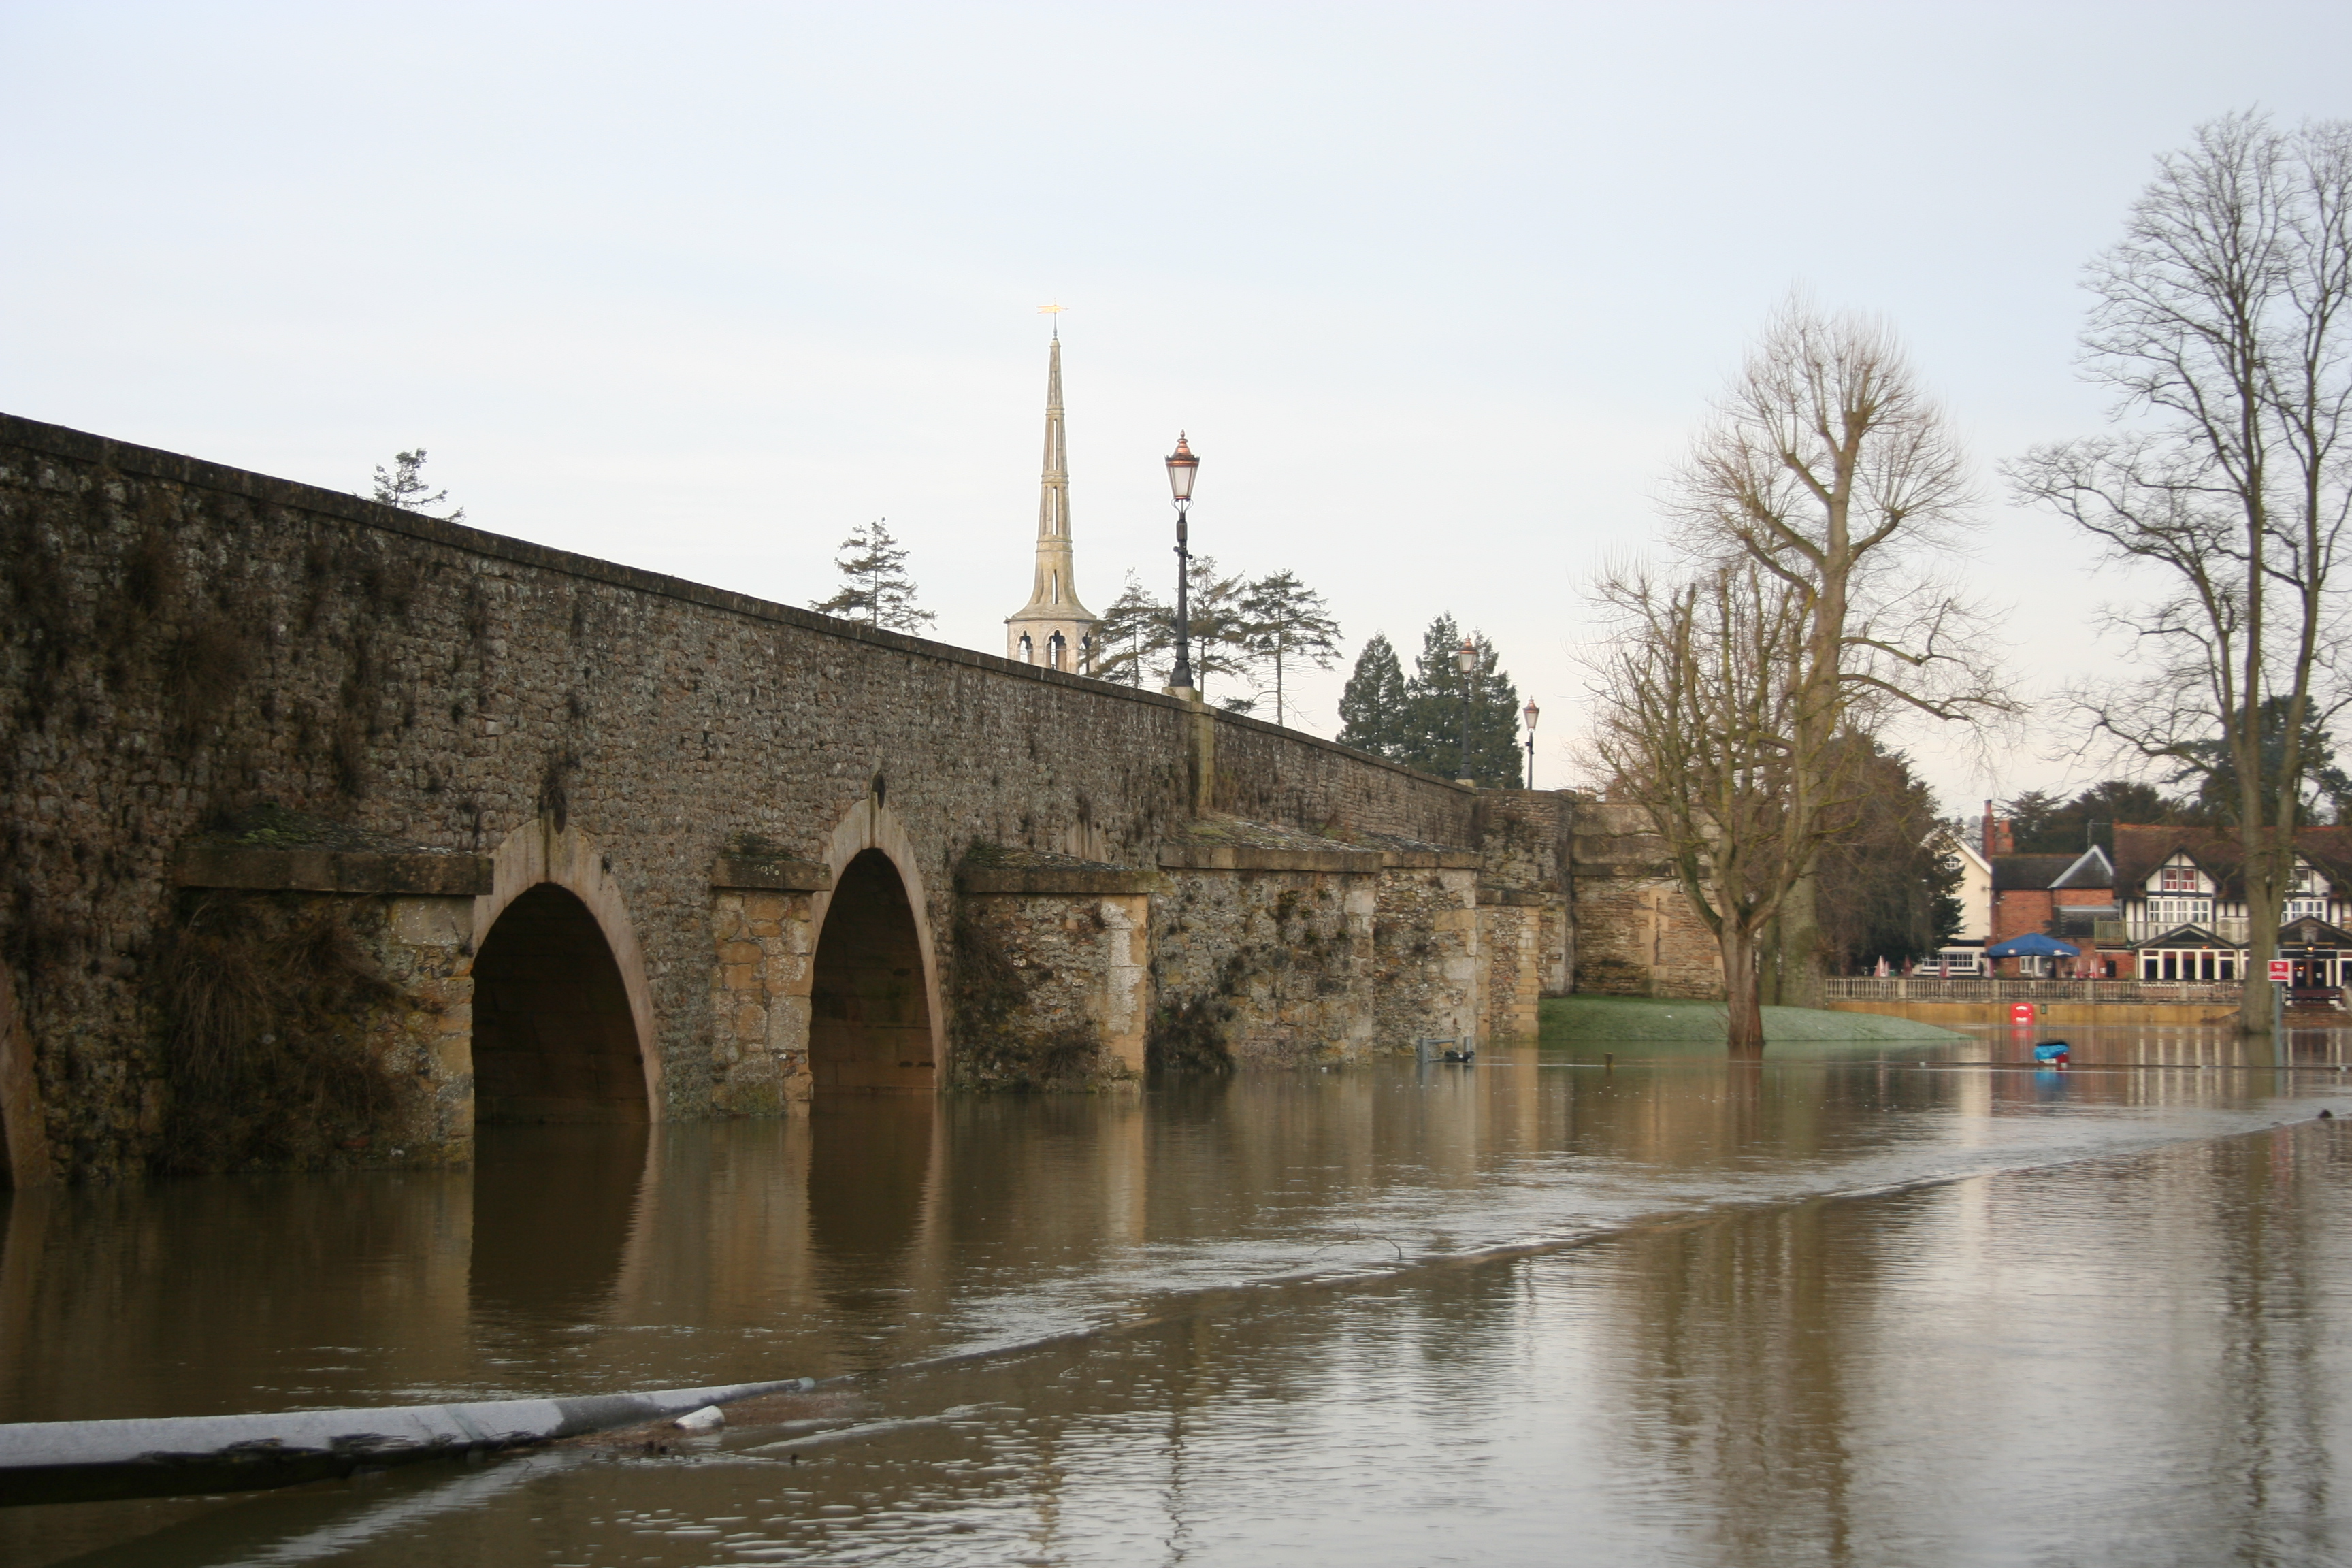 Flooding at Wallingford - image by Harry Dixon